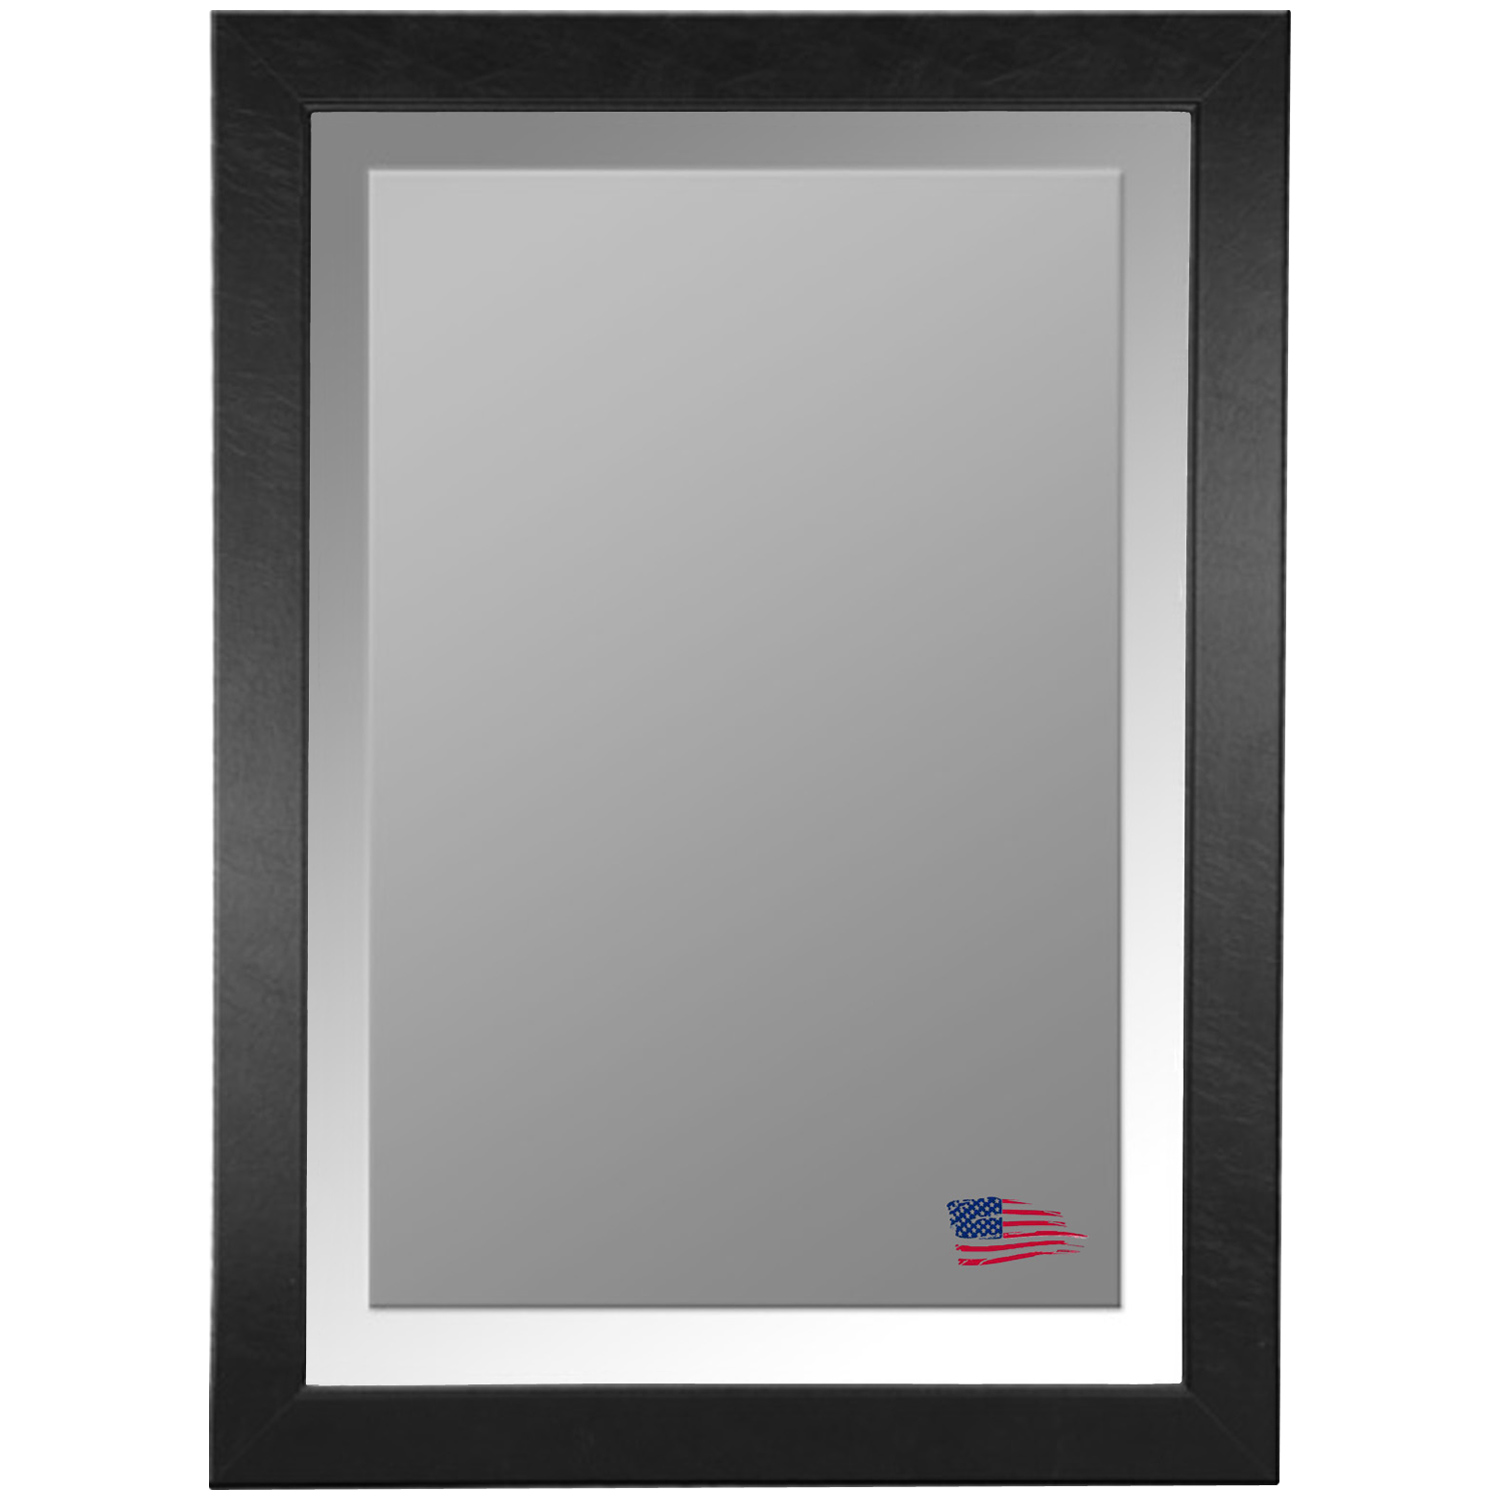 Wall Mirror - Black Leather Frame, Beveled Glass - RAY-R012